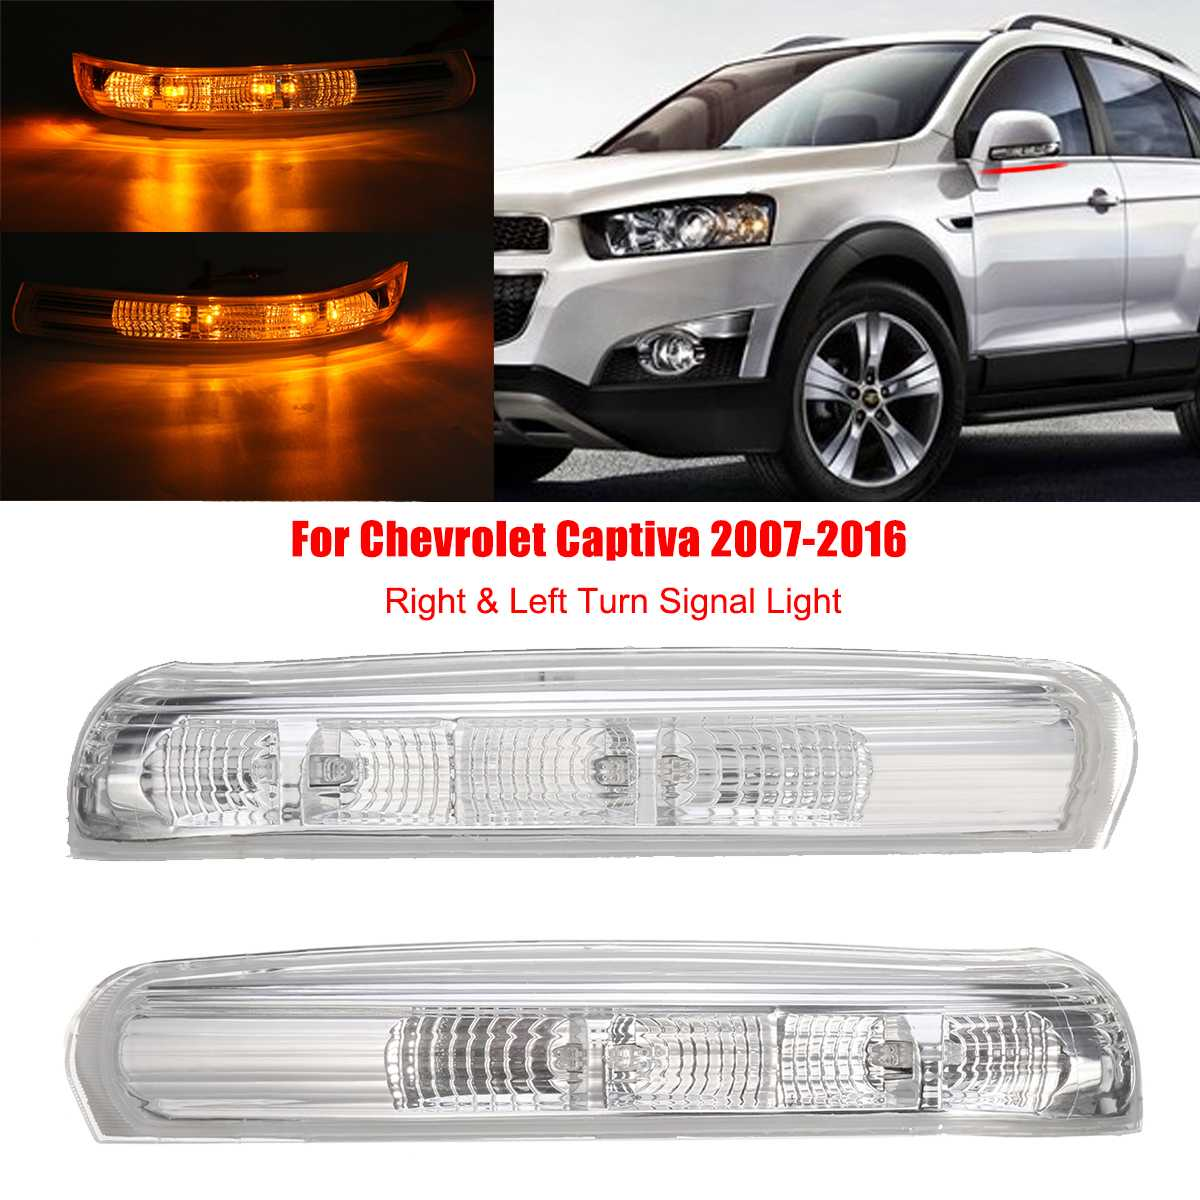 For Chevrolet Captiva Right Side Rear View Mirror Turn Signals Light 2007-2016